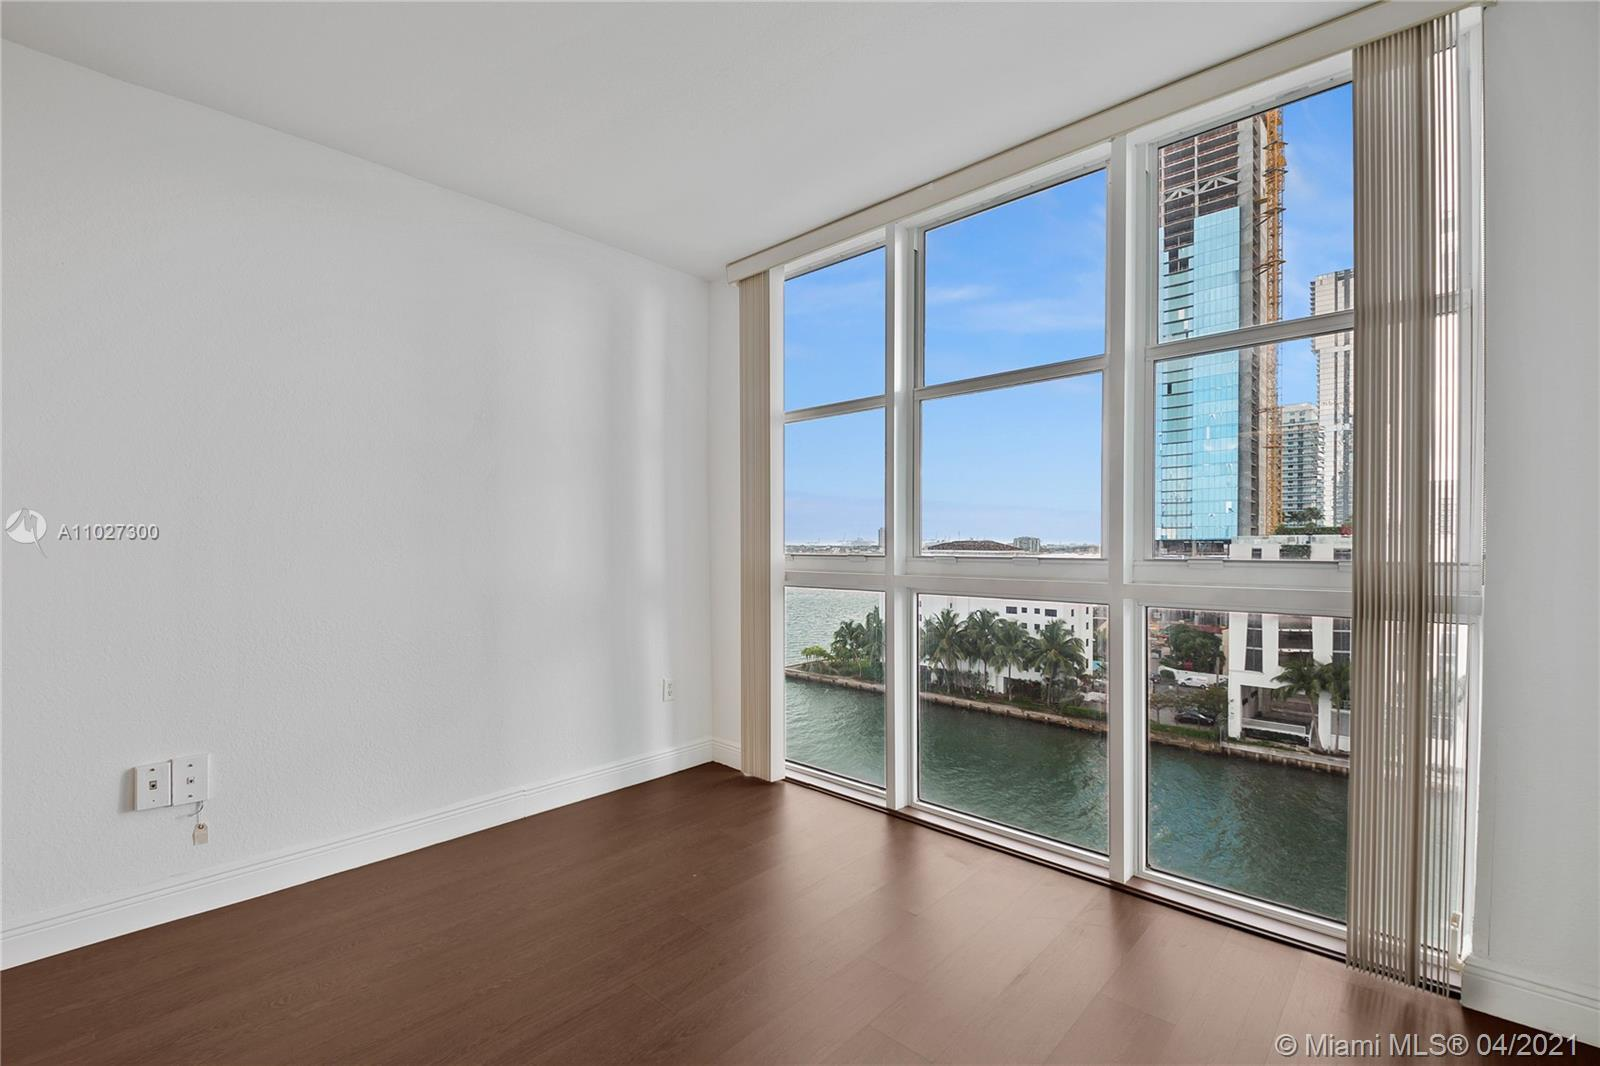 Great one bedroom with amazing water views in boutique, bay-front building. Excellent location close